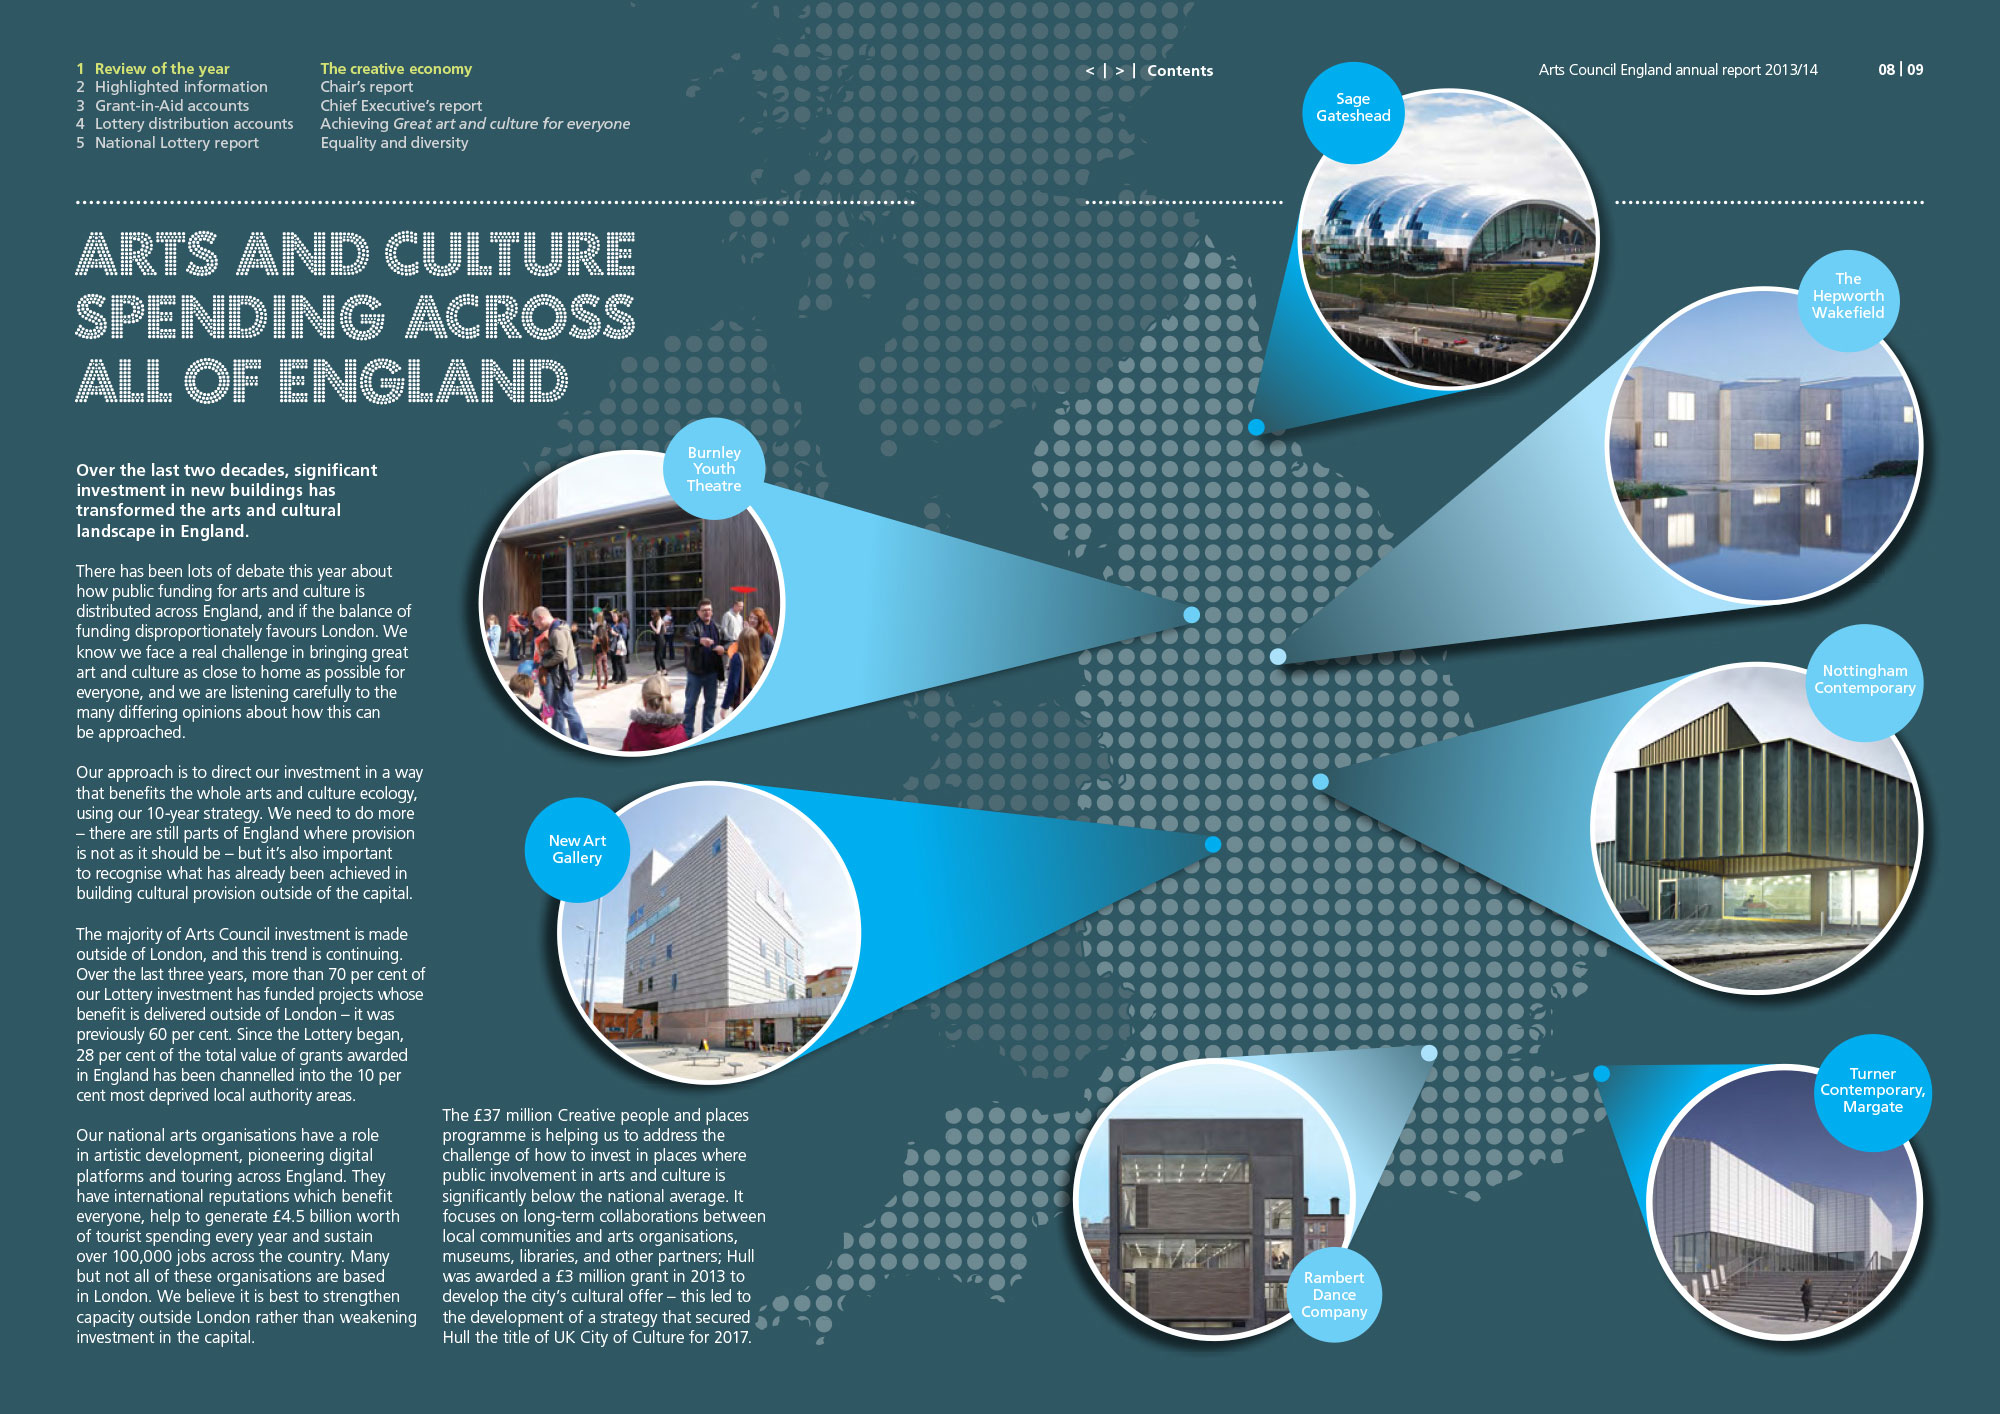 Annual Report 2013/14 infographic